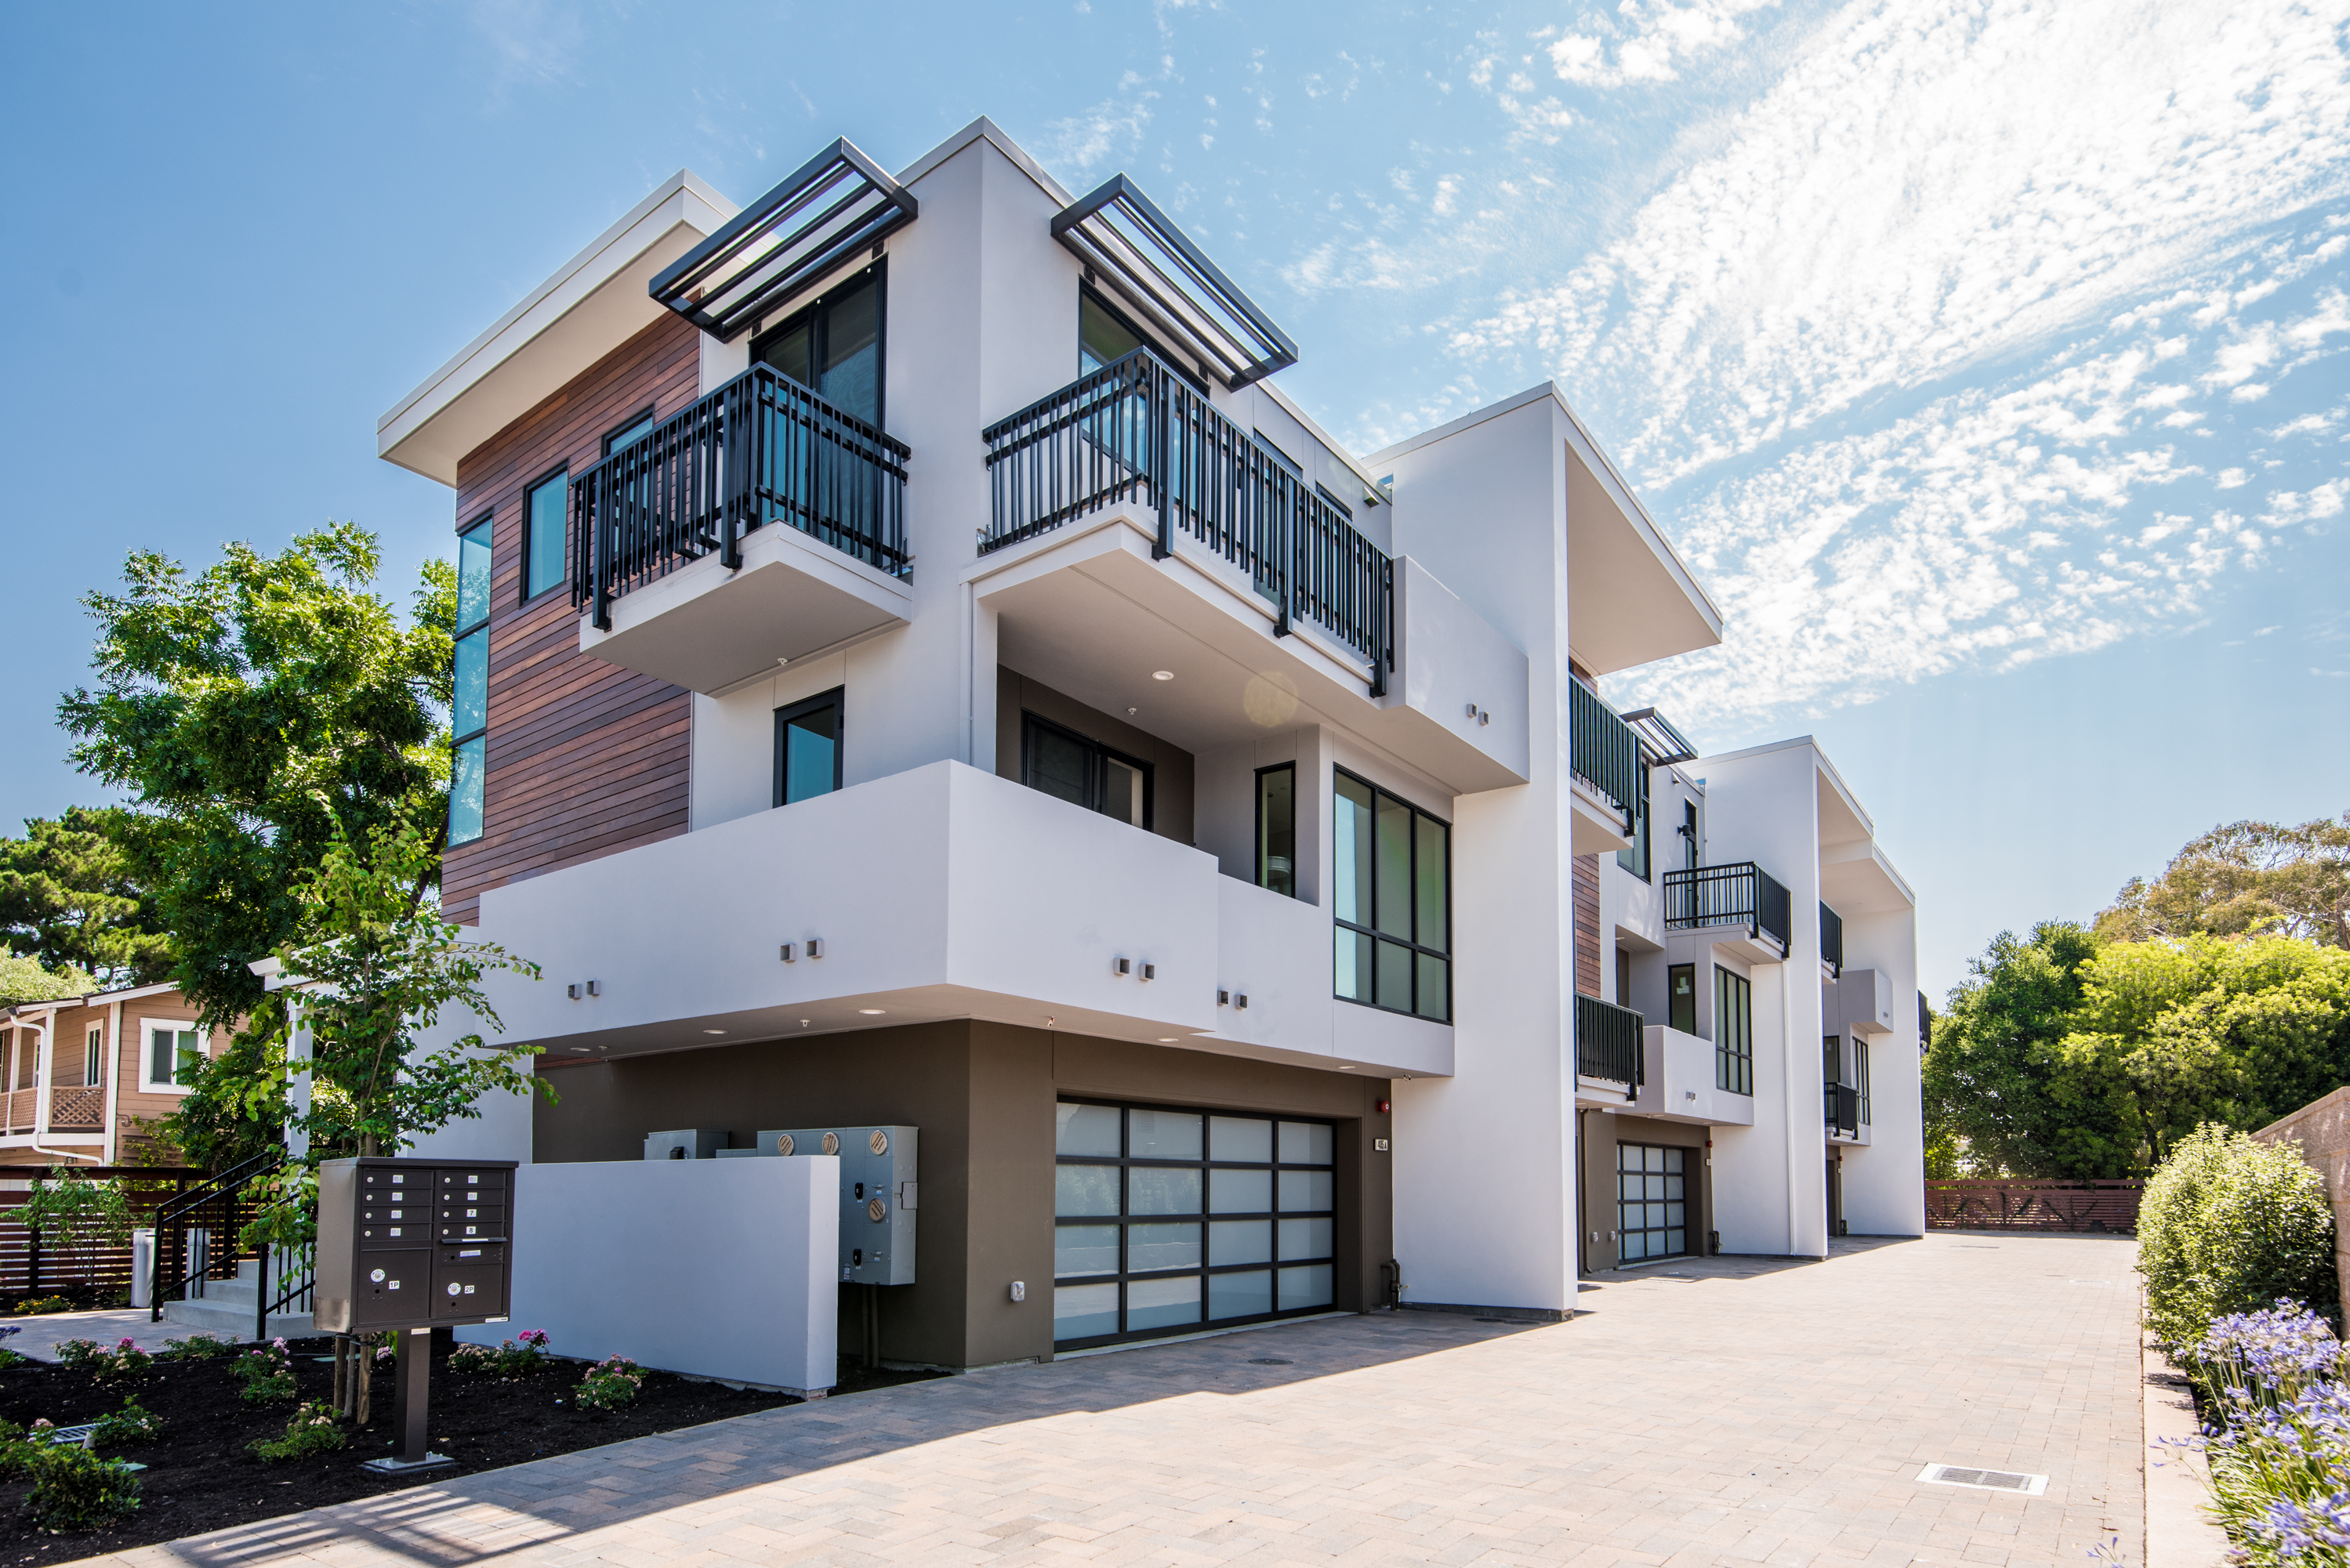 Lp construction commercial and residential construction for Townhouse construction cost